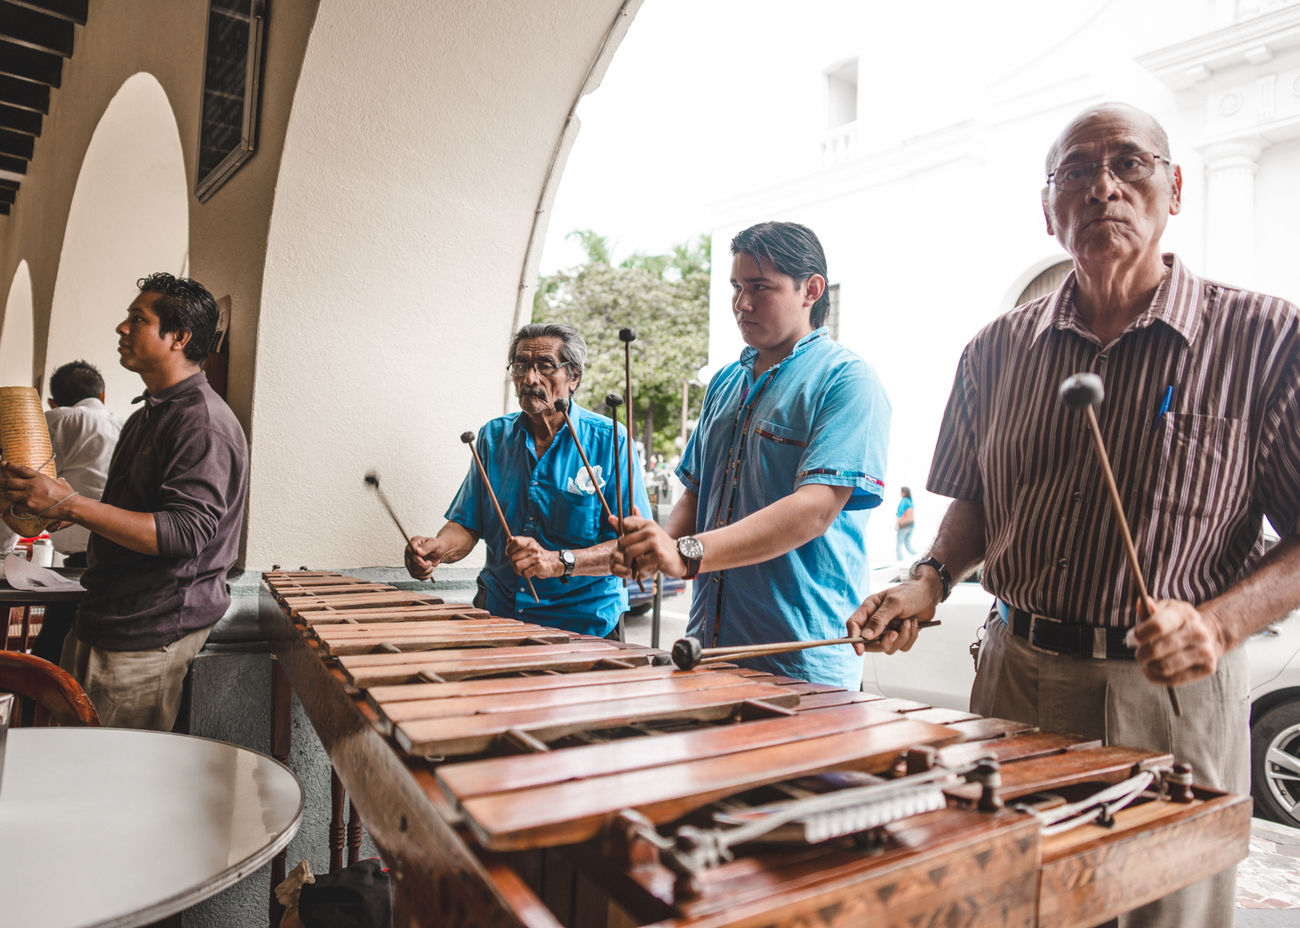 Candid Photography Candid Portraits Casual Clothing Day Folklore Friendship Leisure Activity Lifestyles Marimba Mexico Music People Portrait Relaxation Sitting Street Musicians Streetphotography Town TOWNSCAPE Vacations Veracruz Village Life